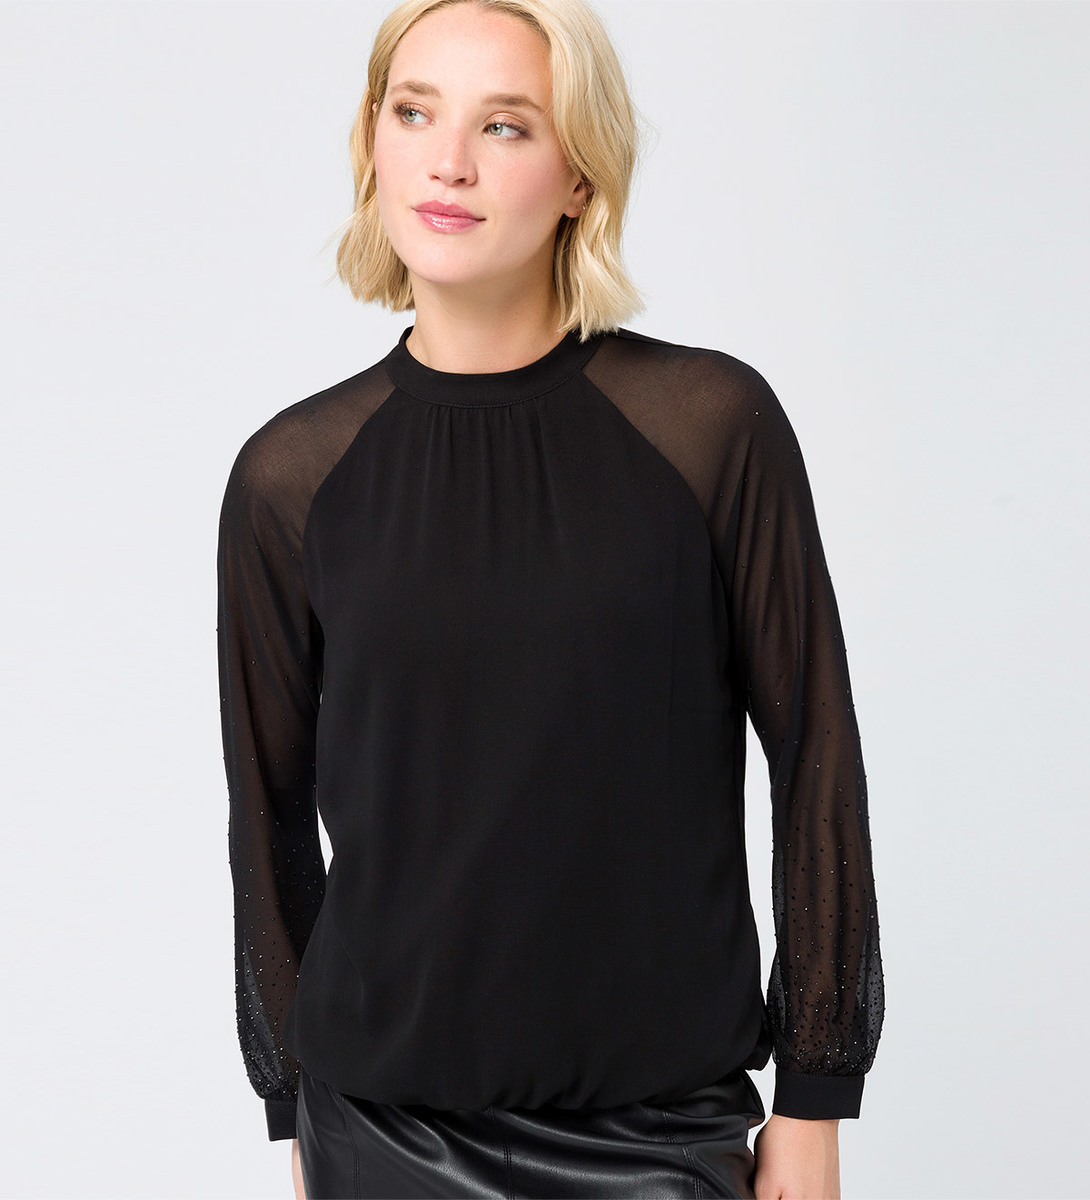 Bluse mit Glitzersteinchen in black